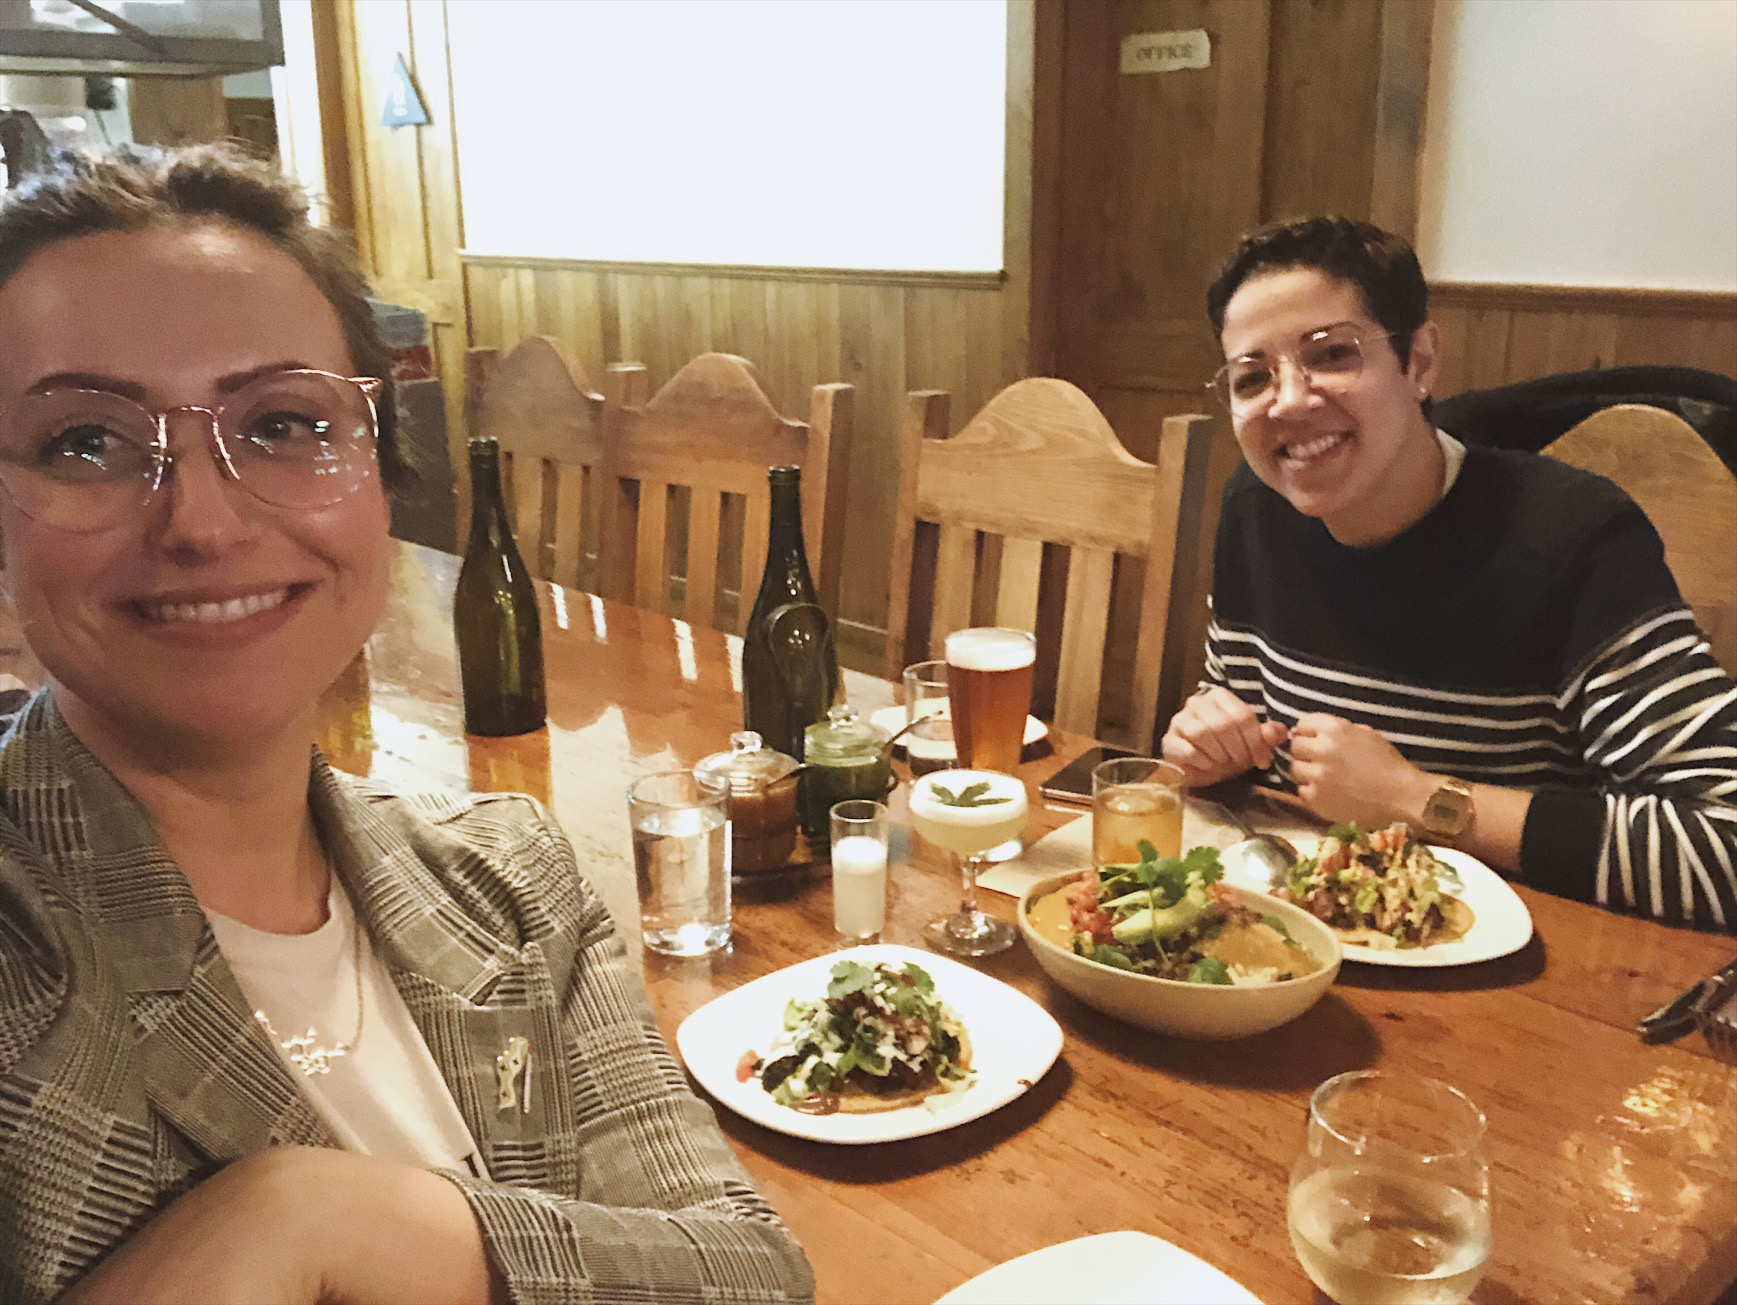 Lunch with my good friend Ciera who I met through the Ganja Goddess Getaway in 2017 <3